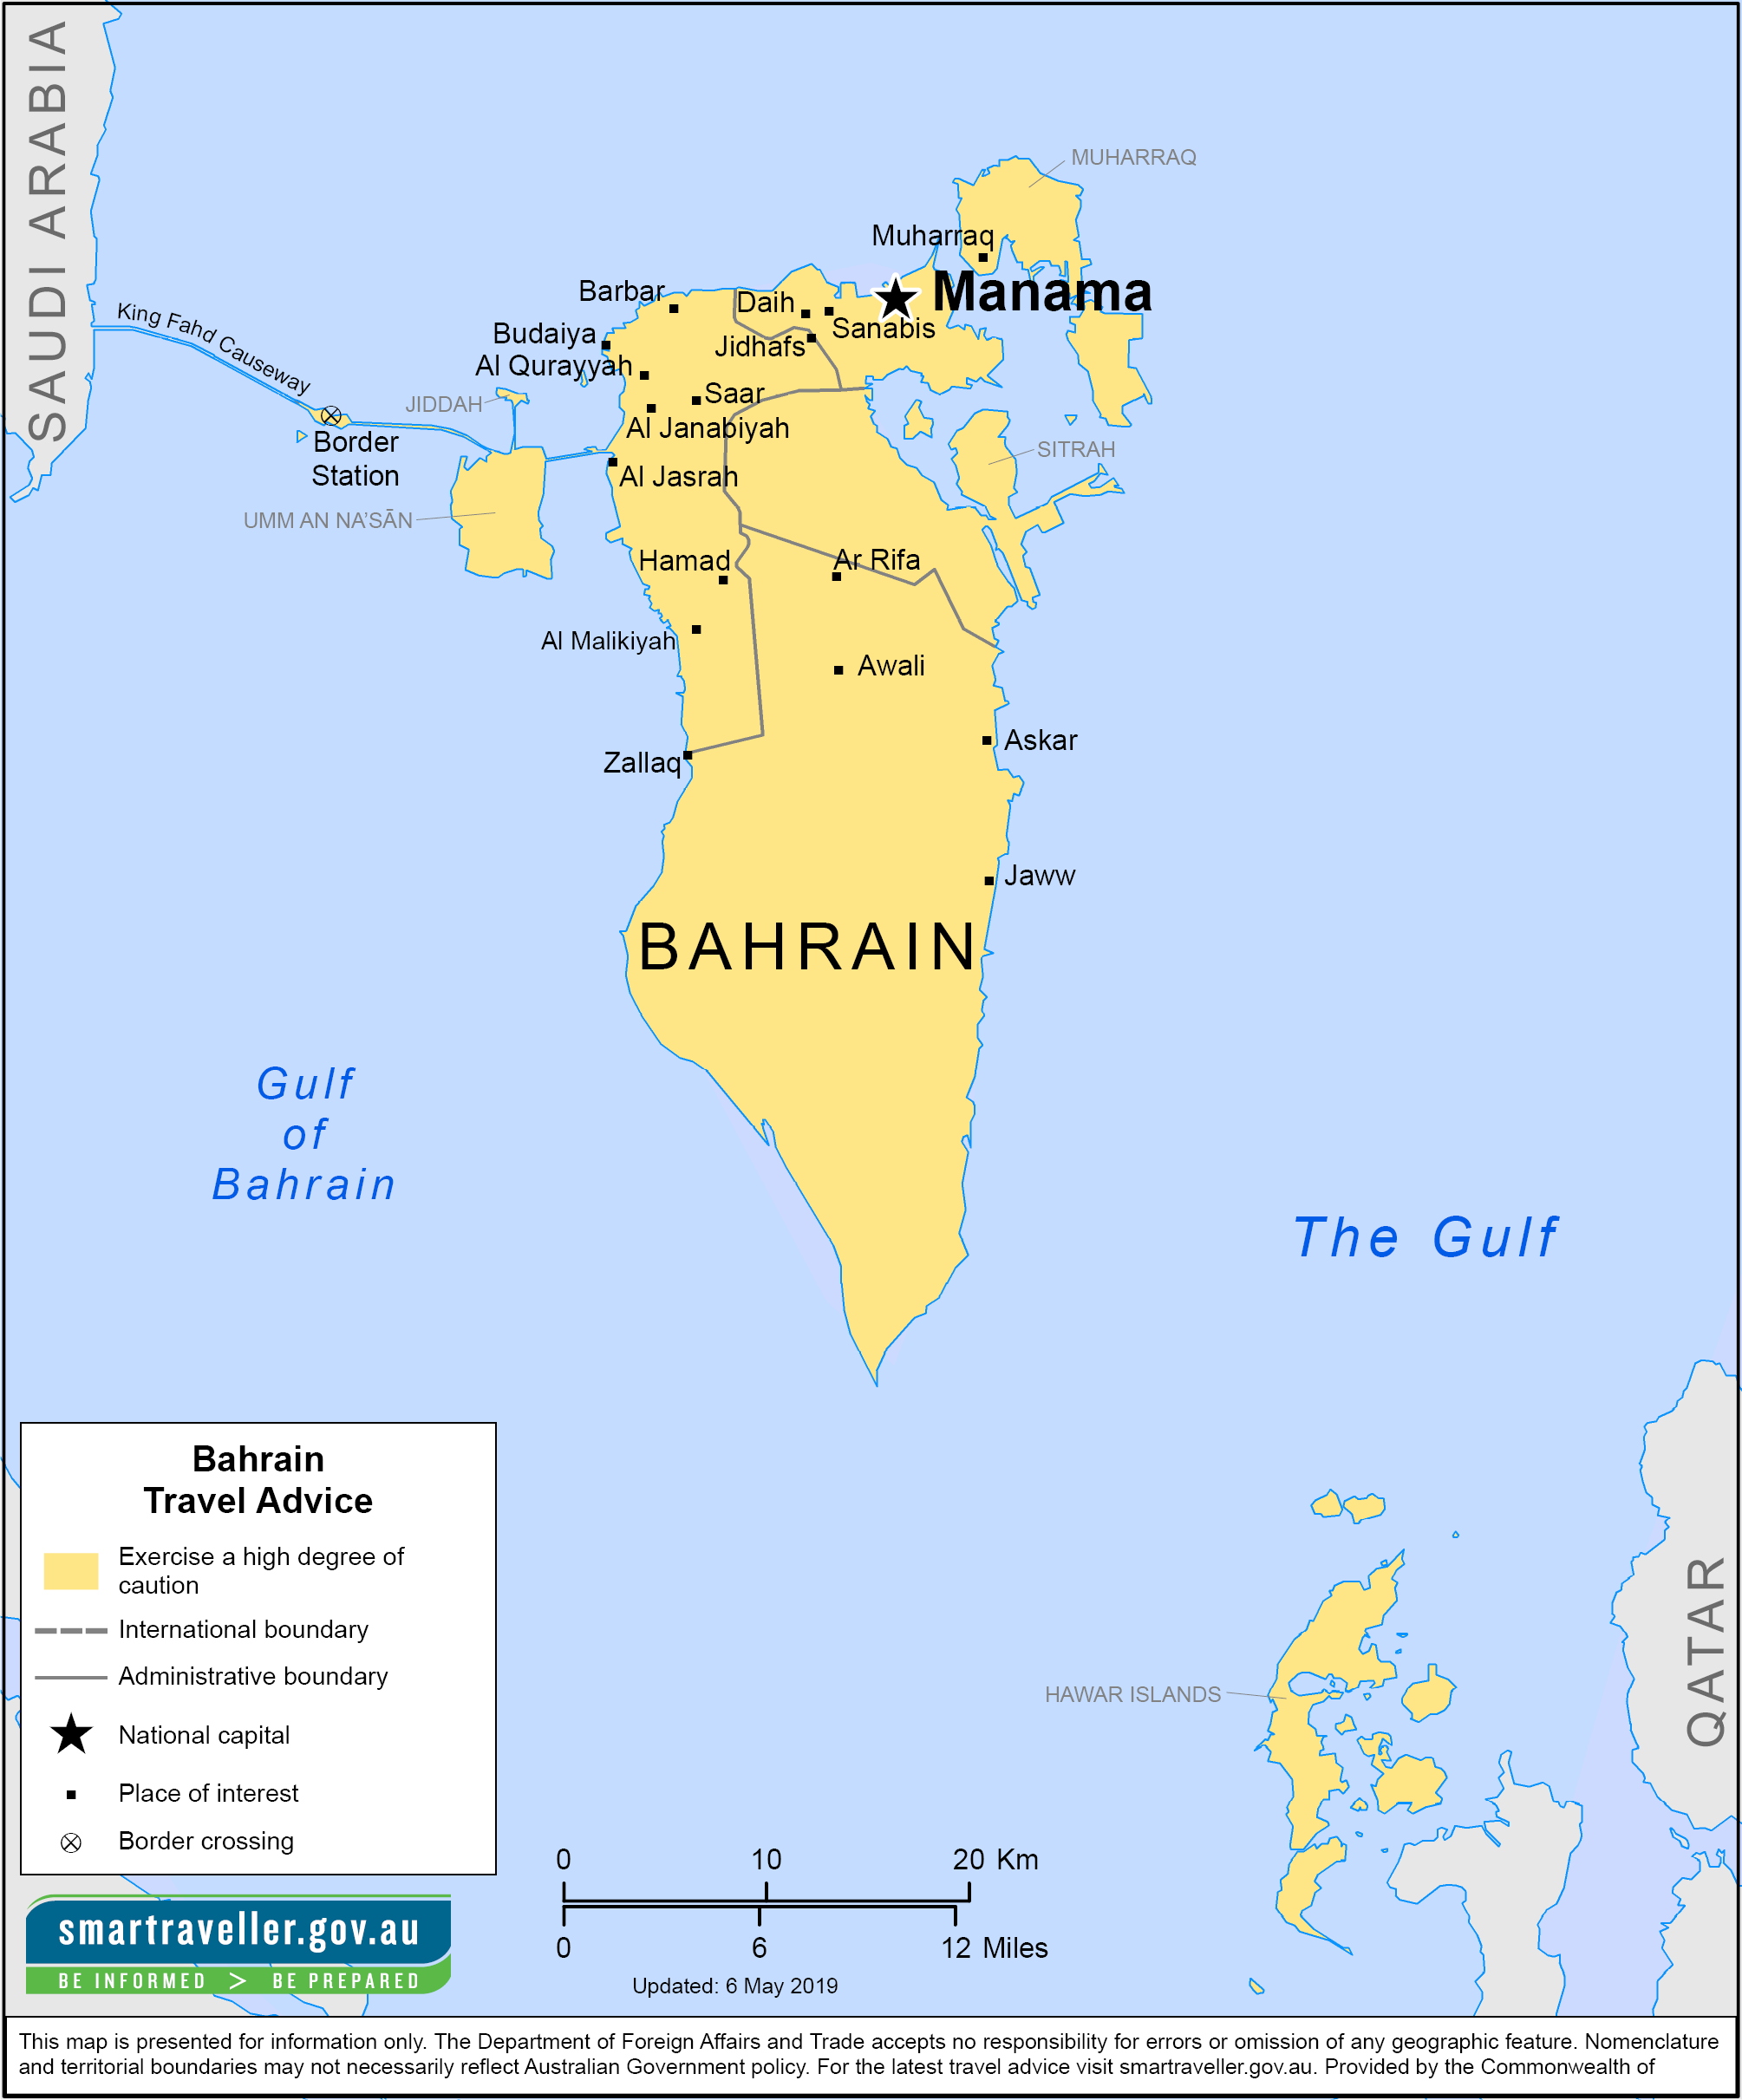 Bahrain Traveler Information - Travel Advice